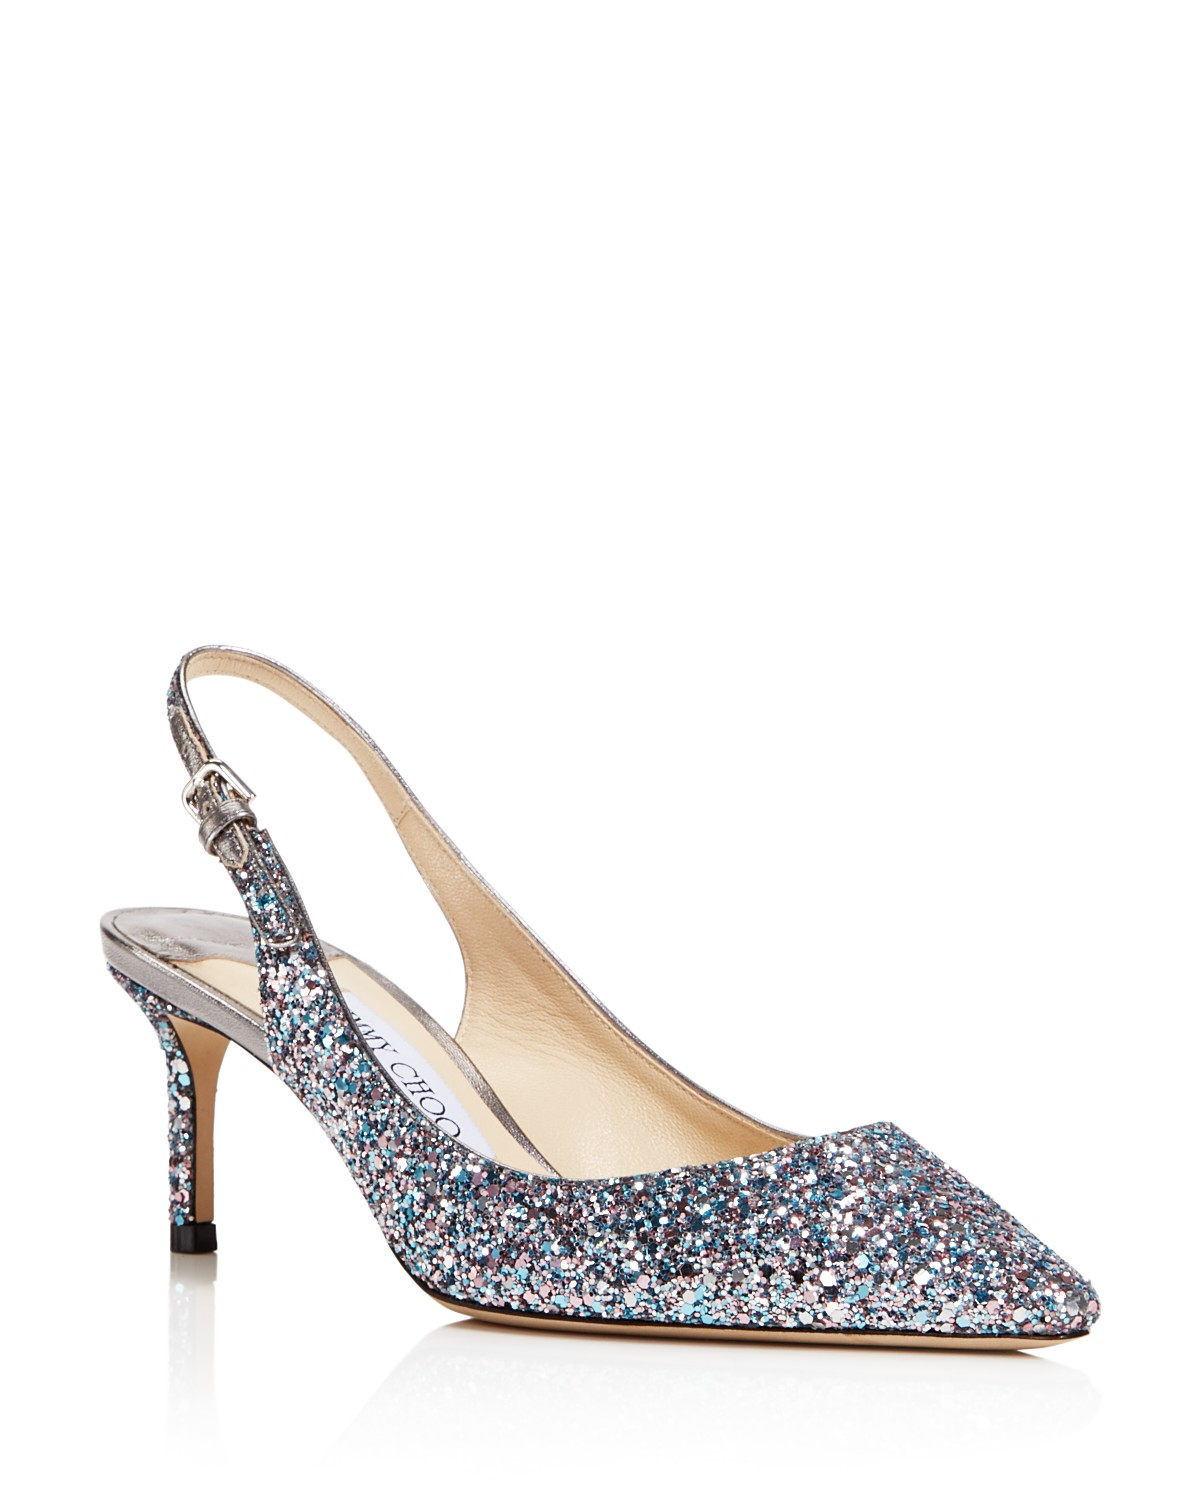 Jimmy choo 60MM ERIN GLITTERED SLINGBACK PUMPS PK6f1Ql